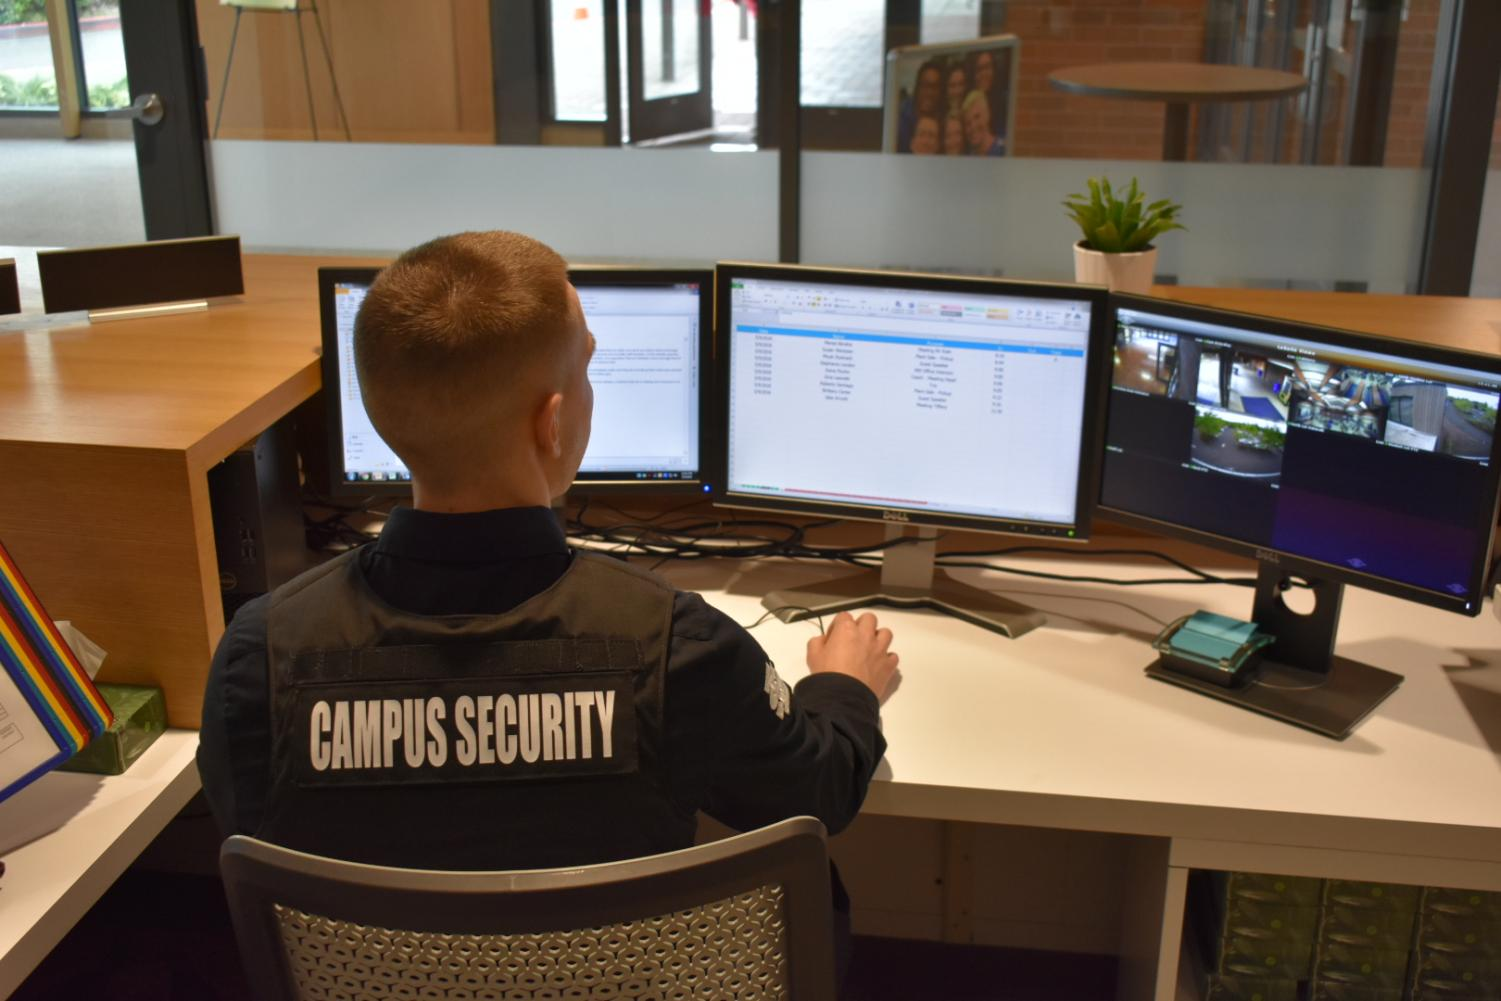 Campus Safety Officer Mr. Weichold will be able to monitor all of the cameras via his desktop.